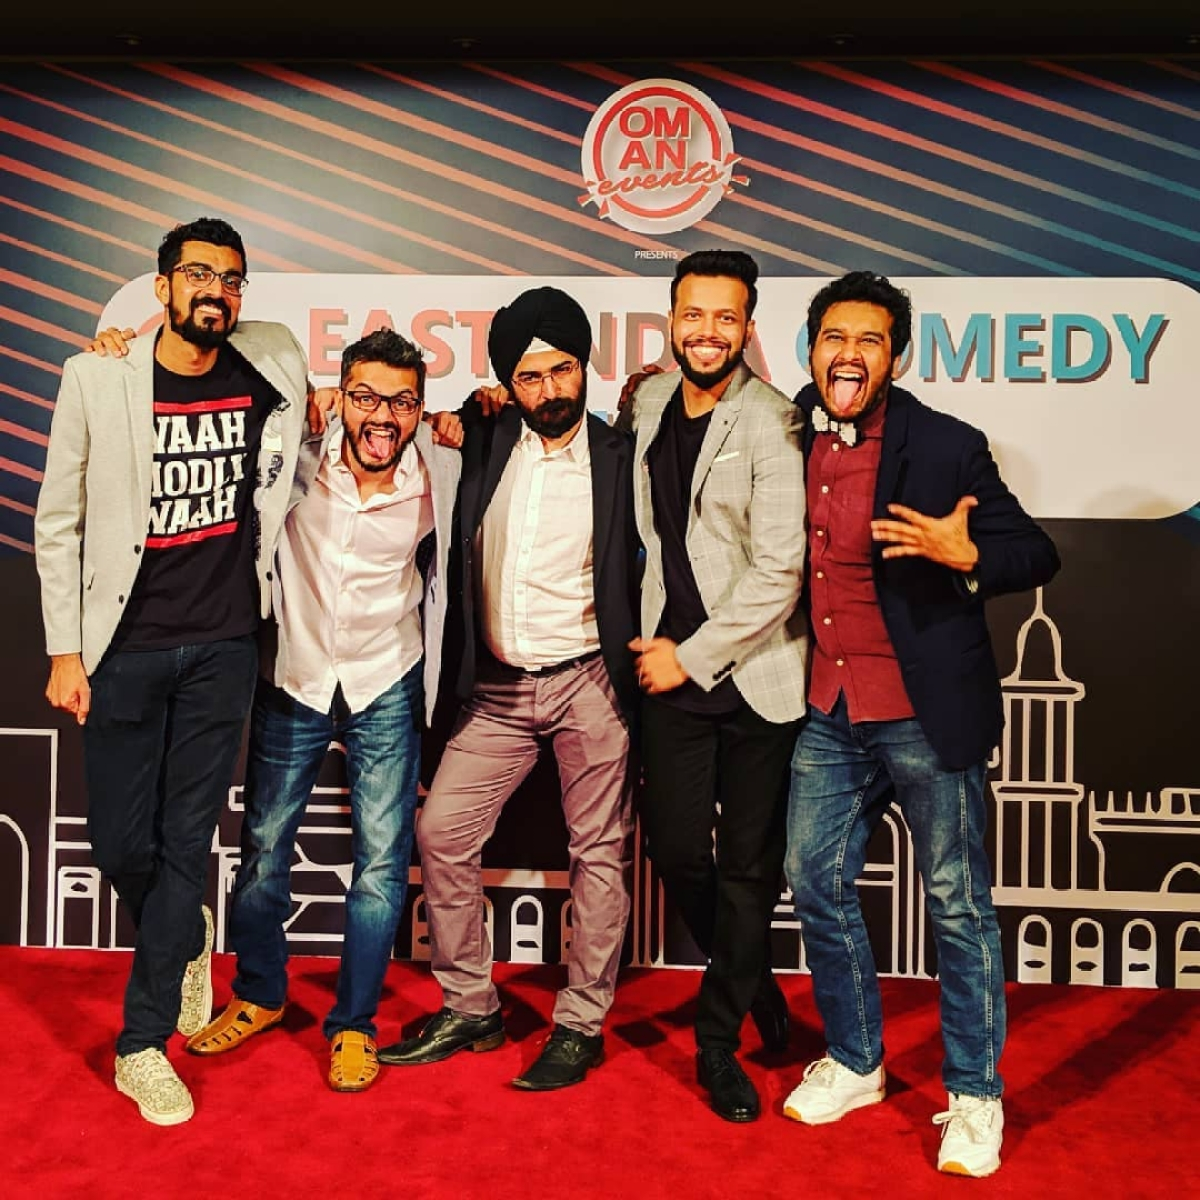 Silence of the Comedians: As Twitterati trend #HinduphobicComedyIndustry, comedians upload 'apology' videos